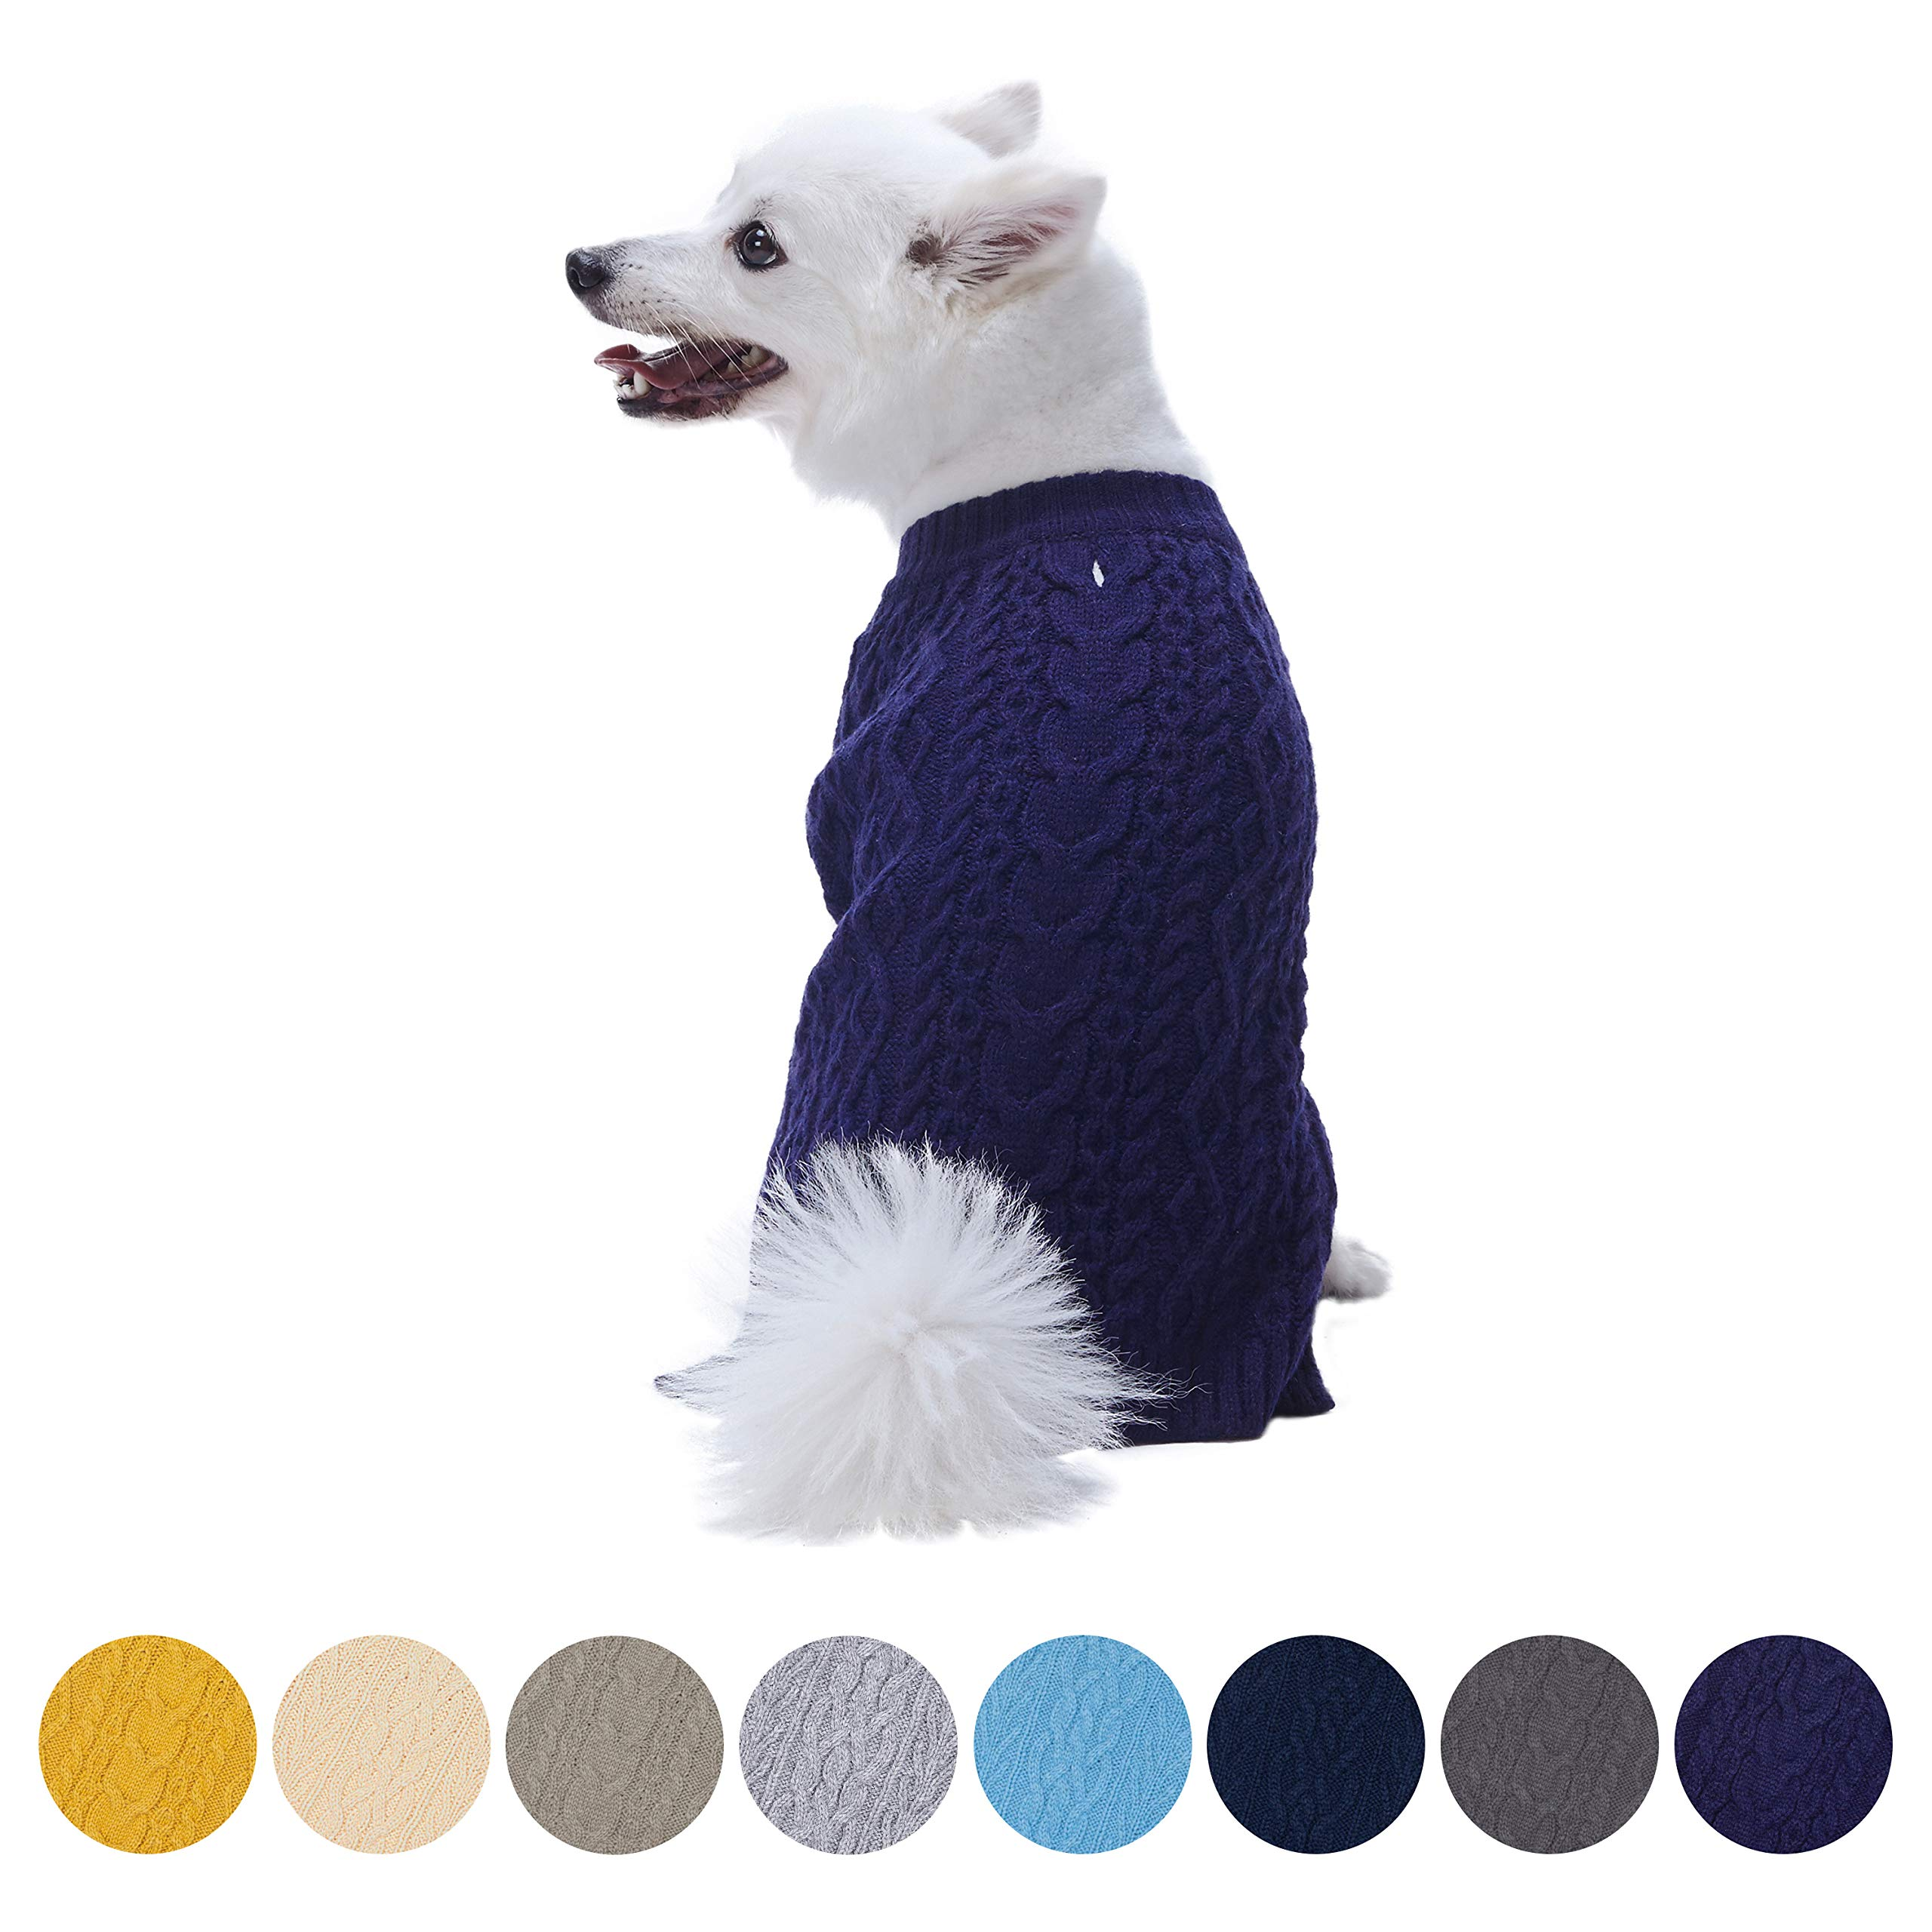 Blueberry Pet 16 Colors Classic Wool Blend Cable Knit Pullover Dog Sweater in Midnight Blue, Back Length 20'', Pack of 1 Clothes for Dogs